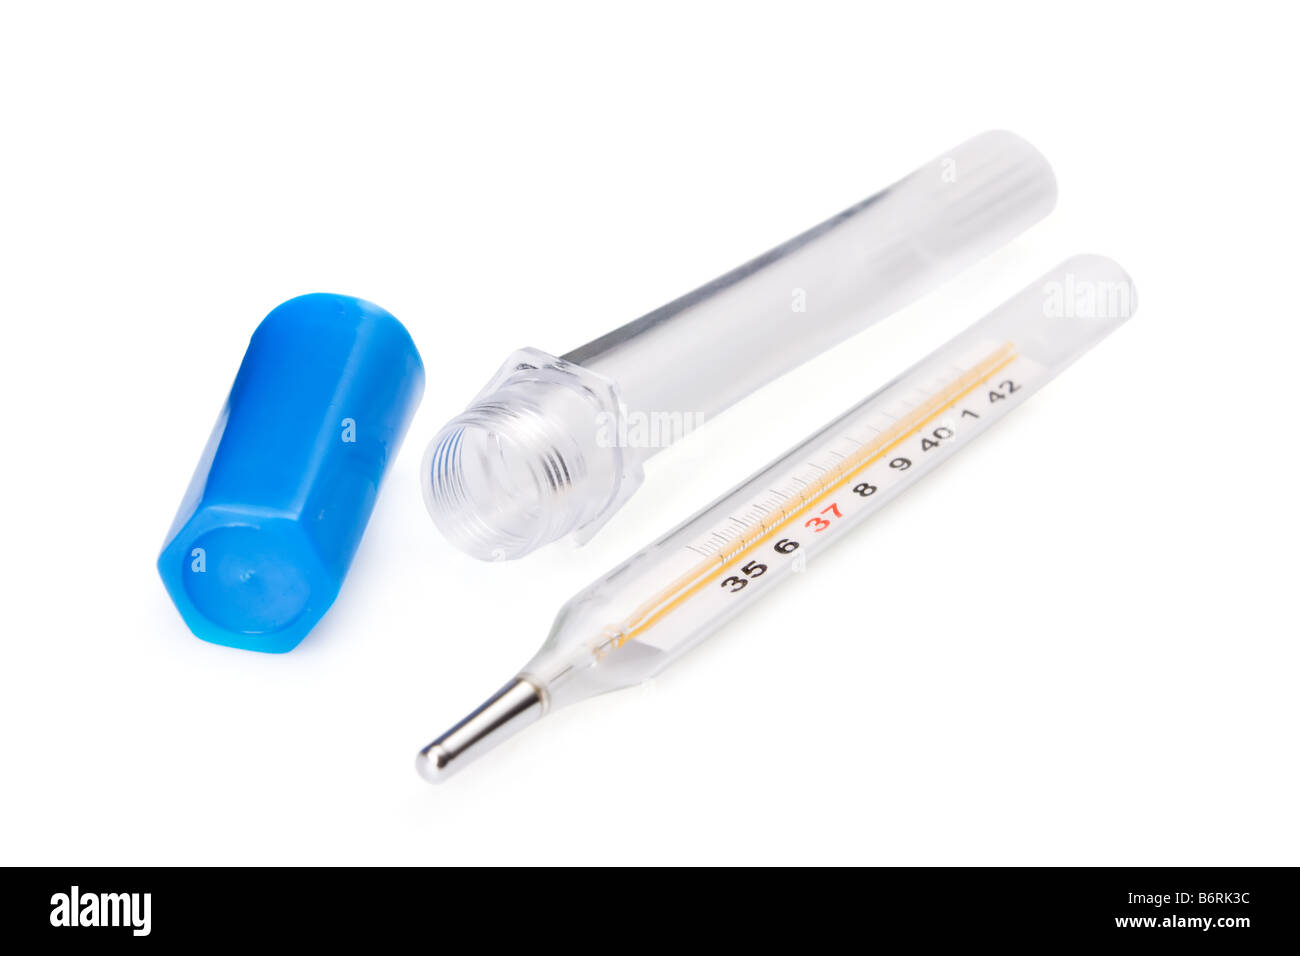 Traditional thermometer to measure body temperature with case - Stock Image